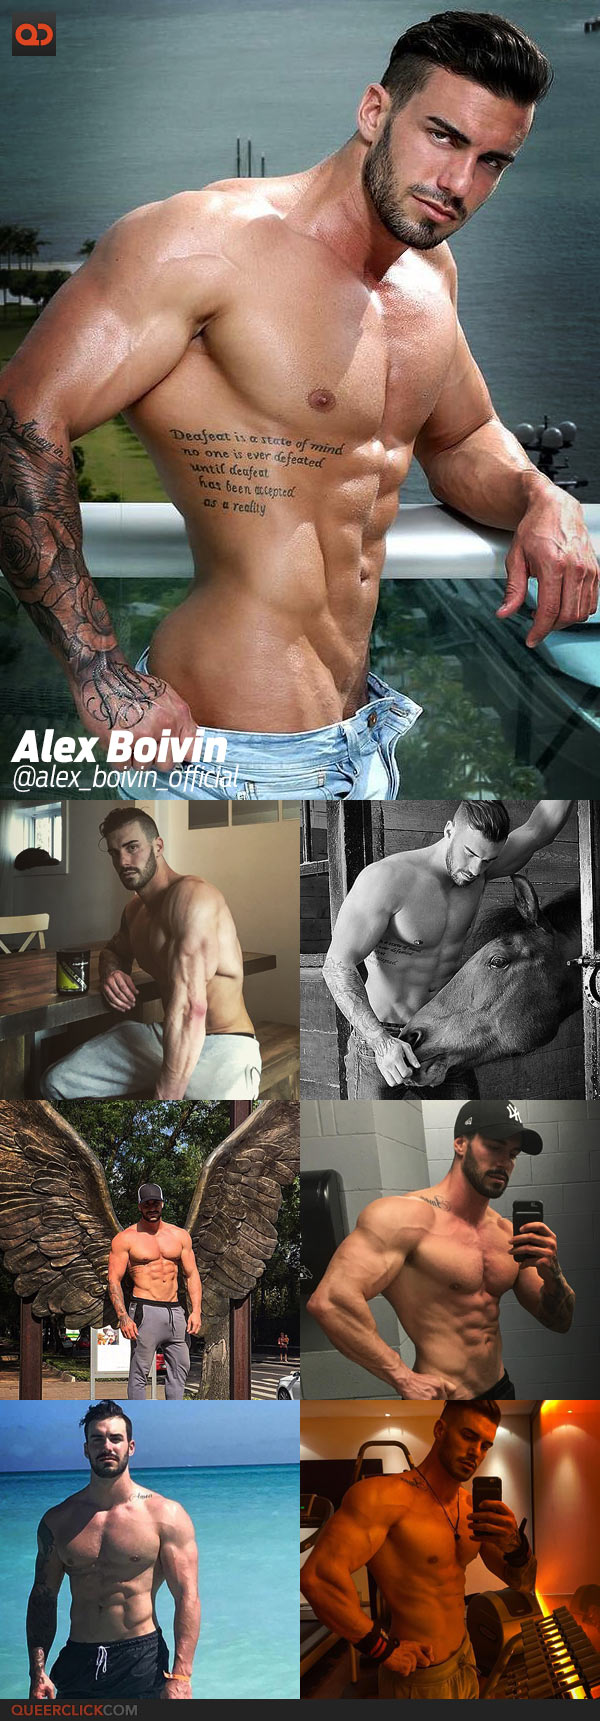 Anthony Pecoraro Porn nine hot fitness models you need to follow on instagram